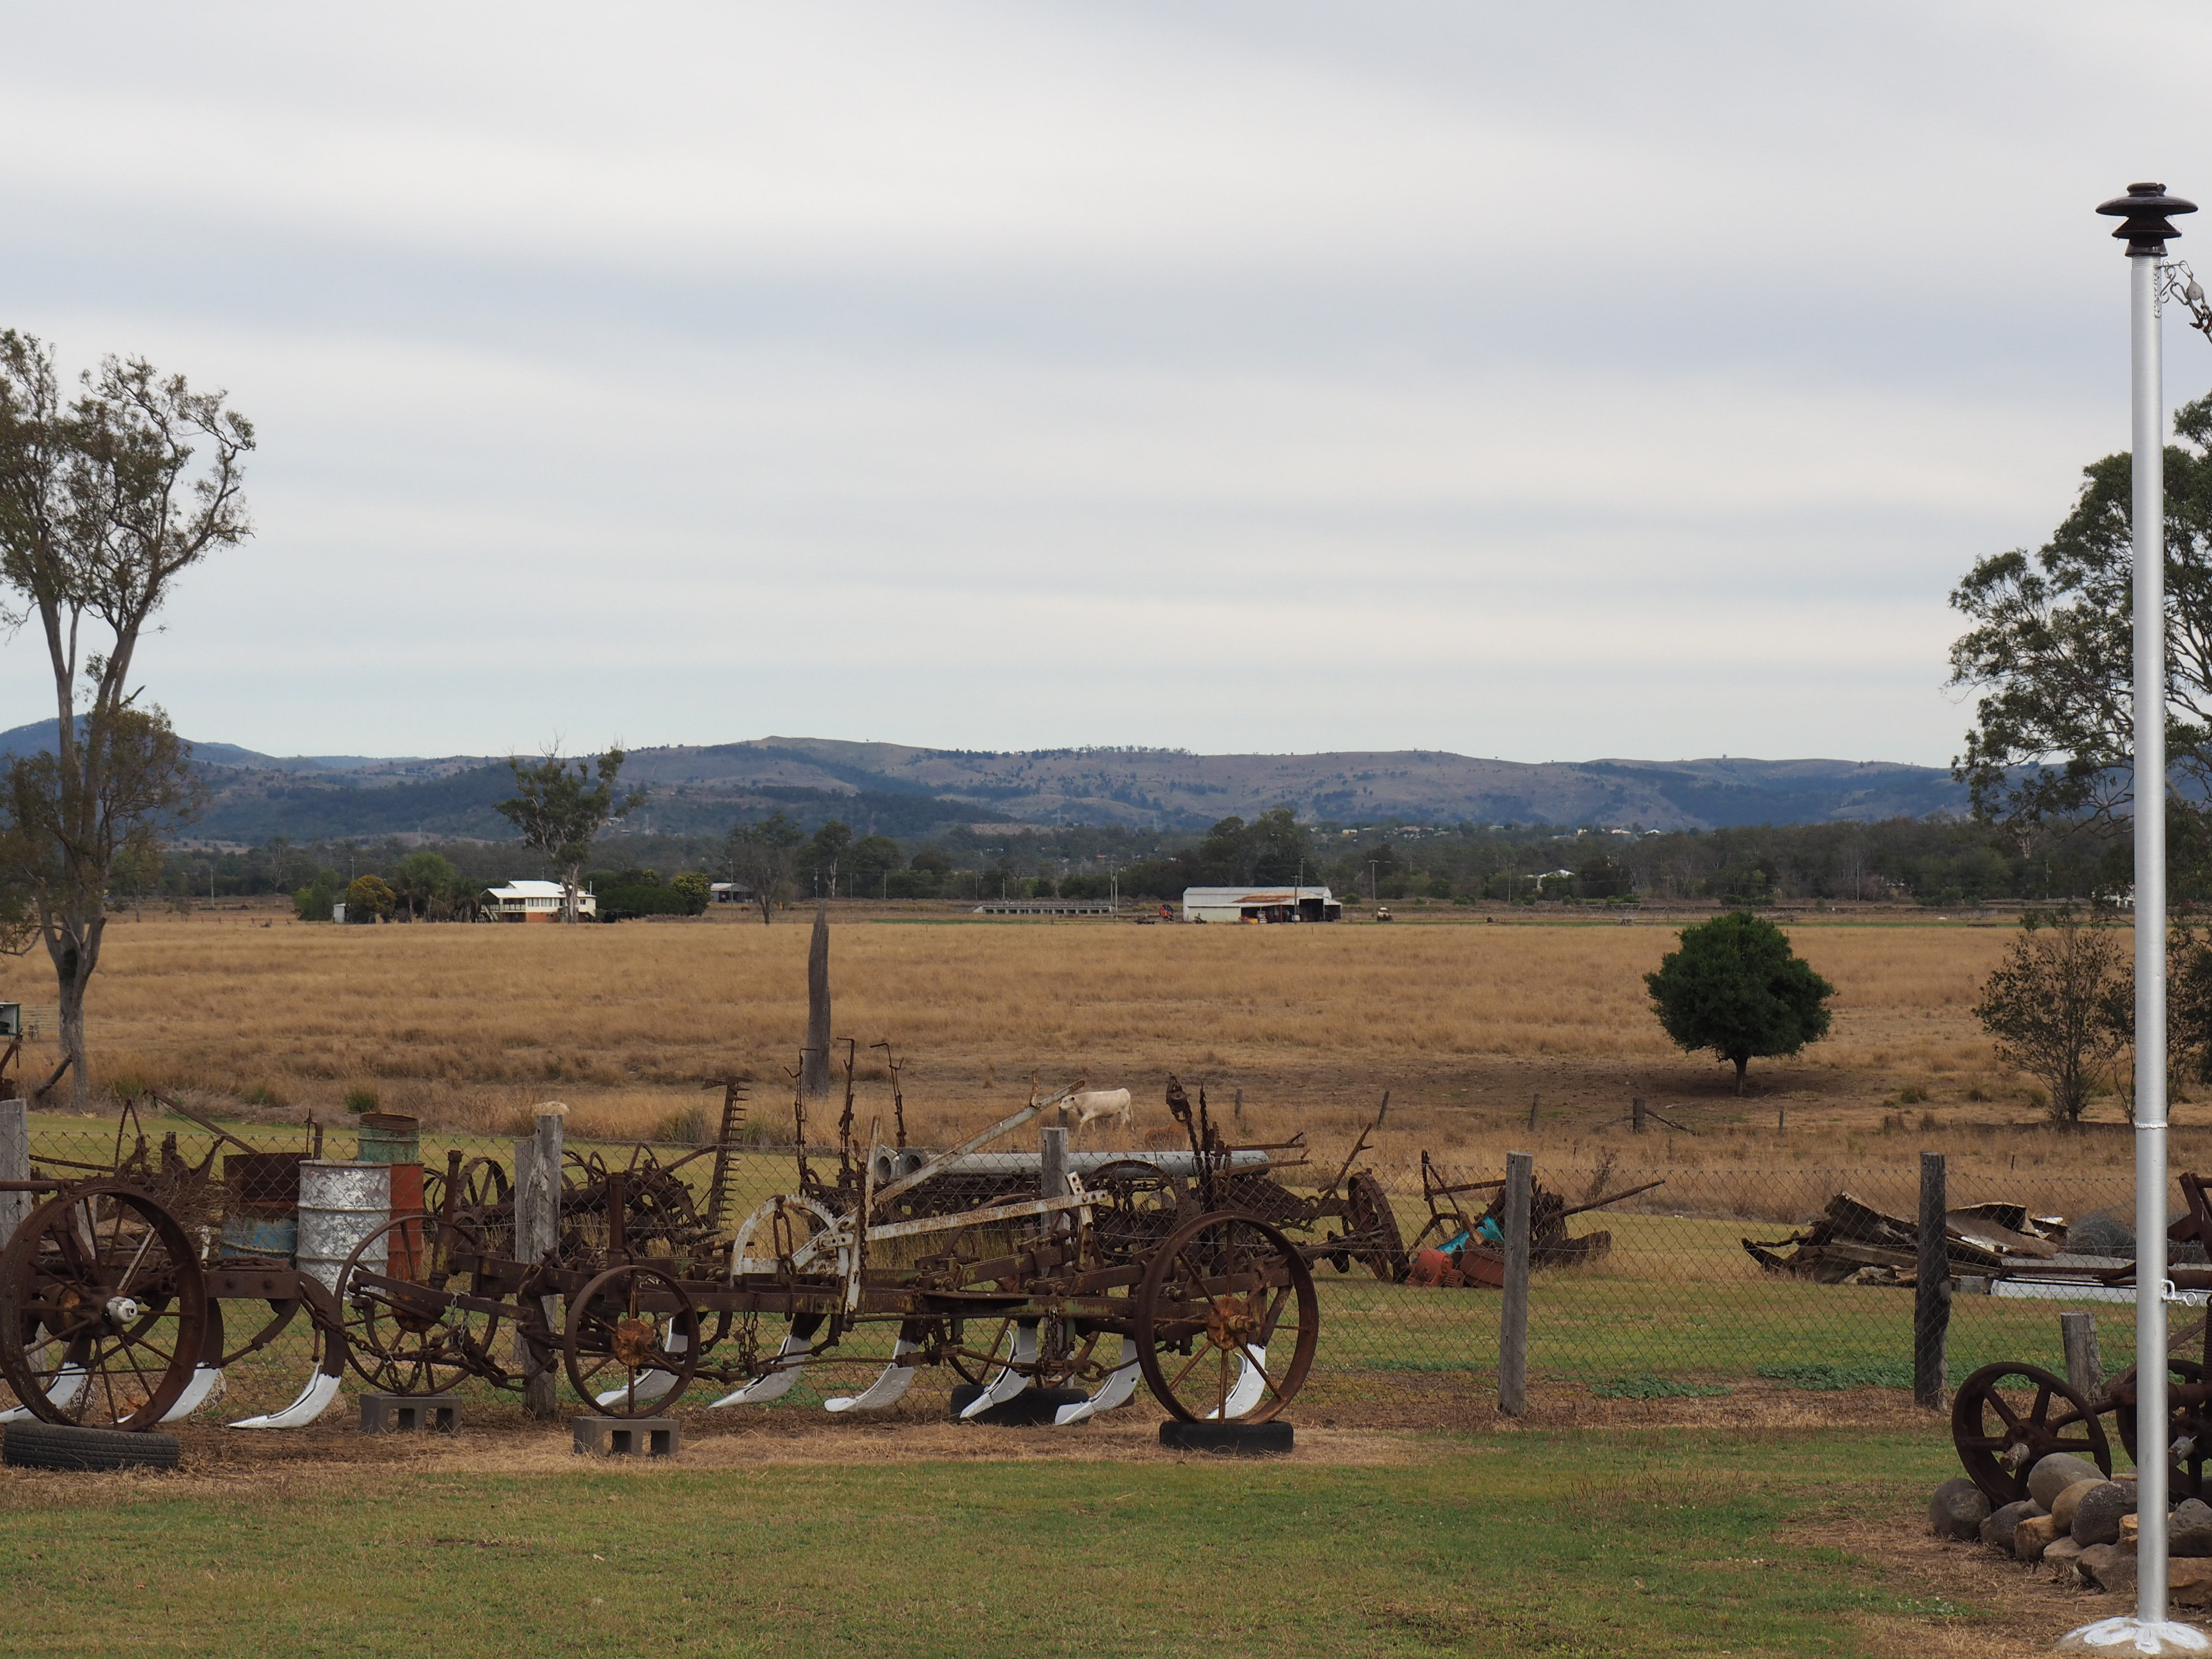 Affordable Farm Machinery >> Old Farm Machinery at Laidley - Brisbane